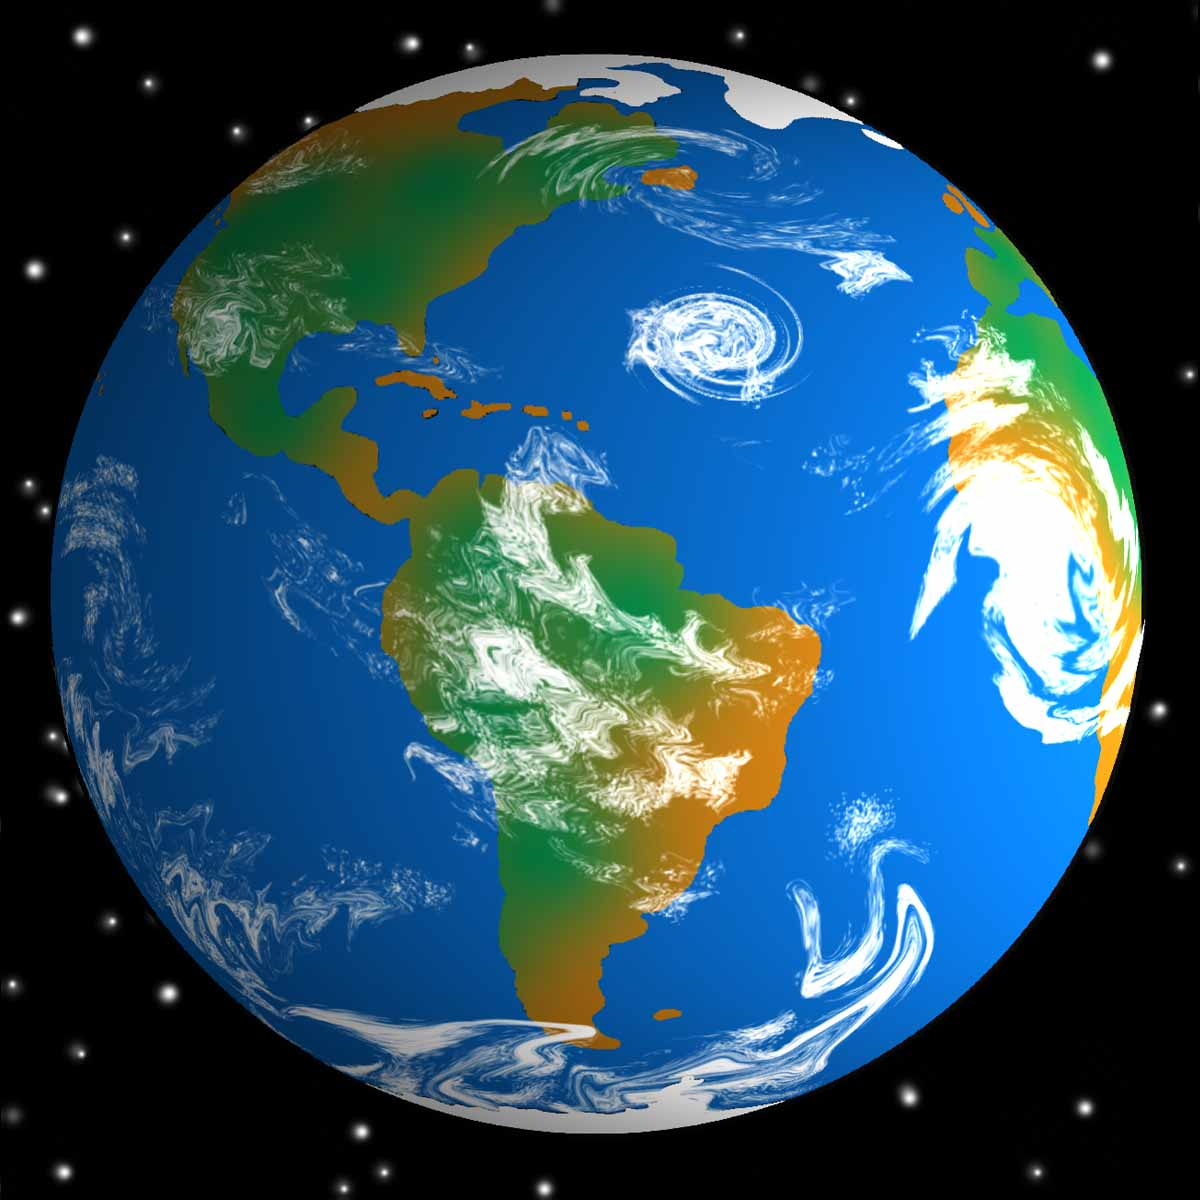 Planet Earth clipart Planet Earth earth pics black